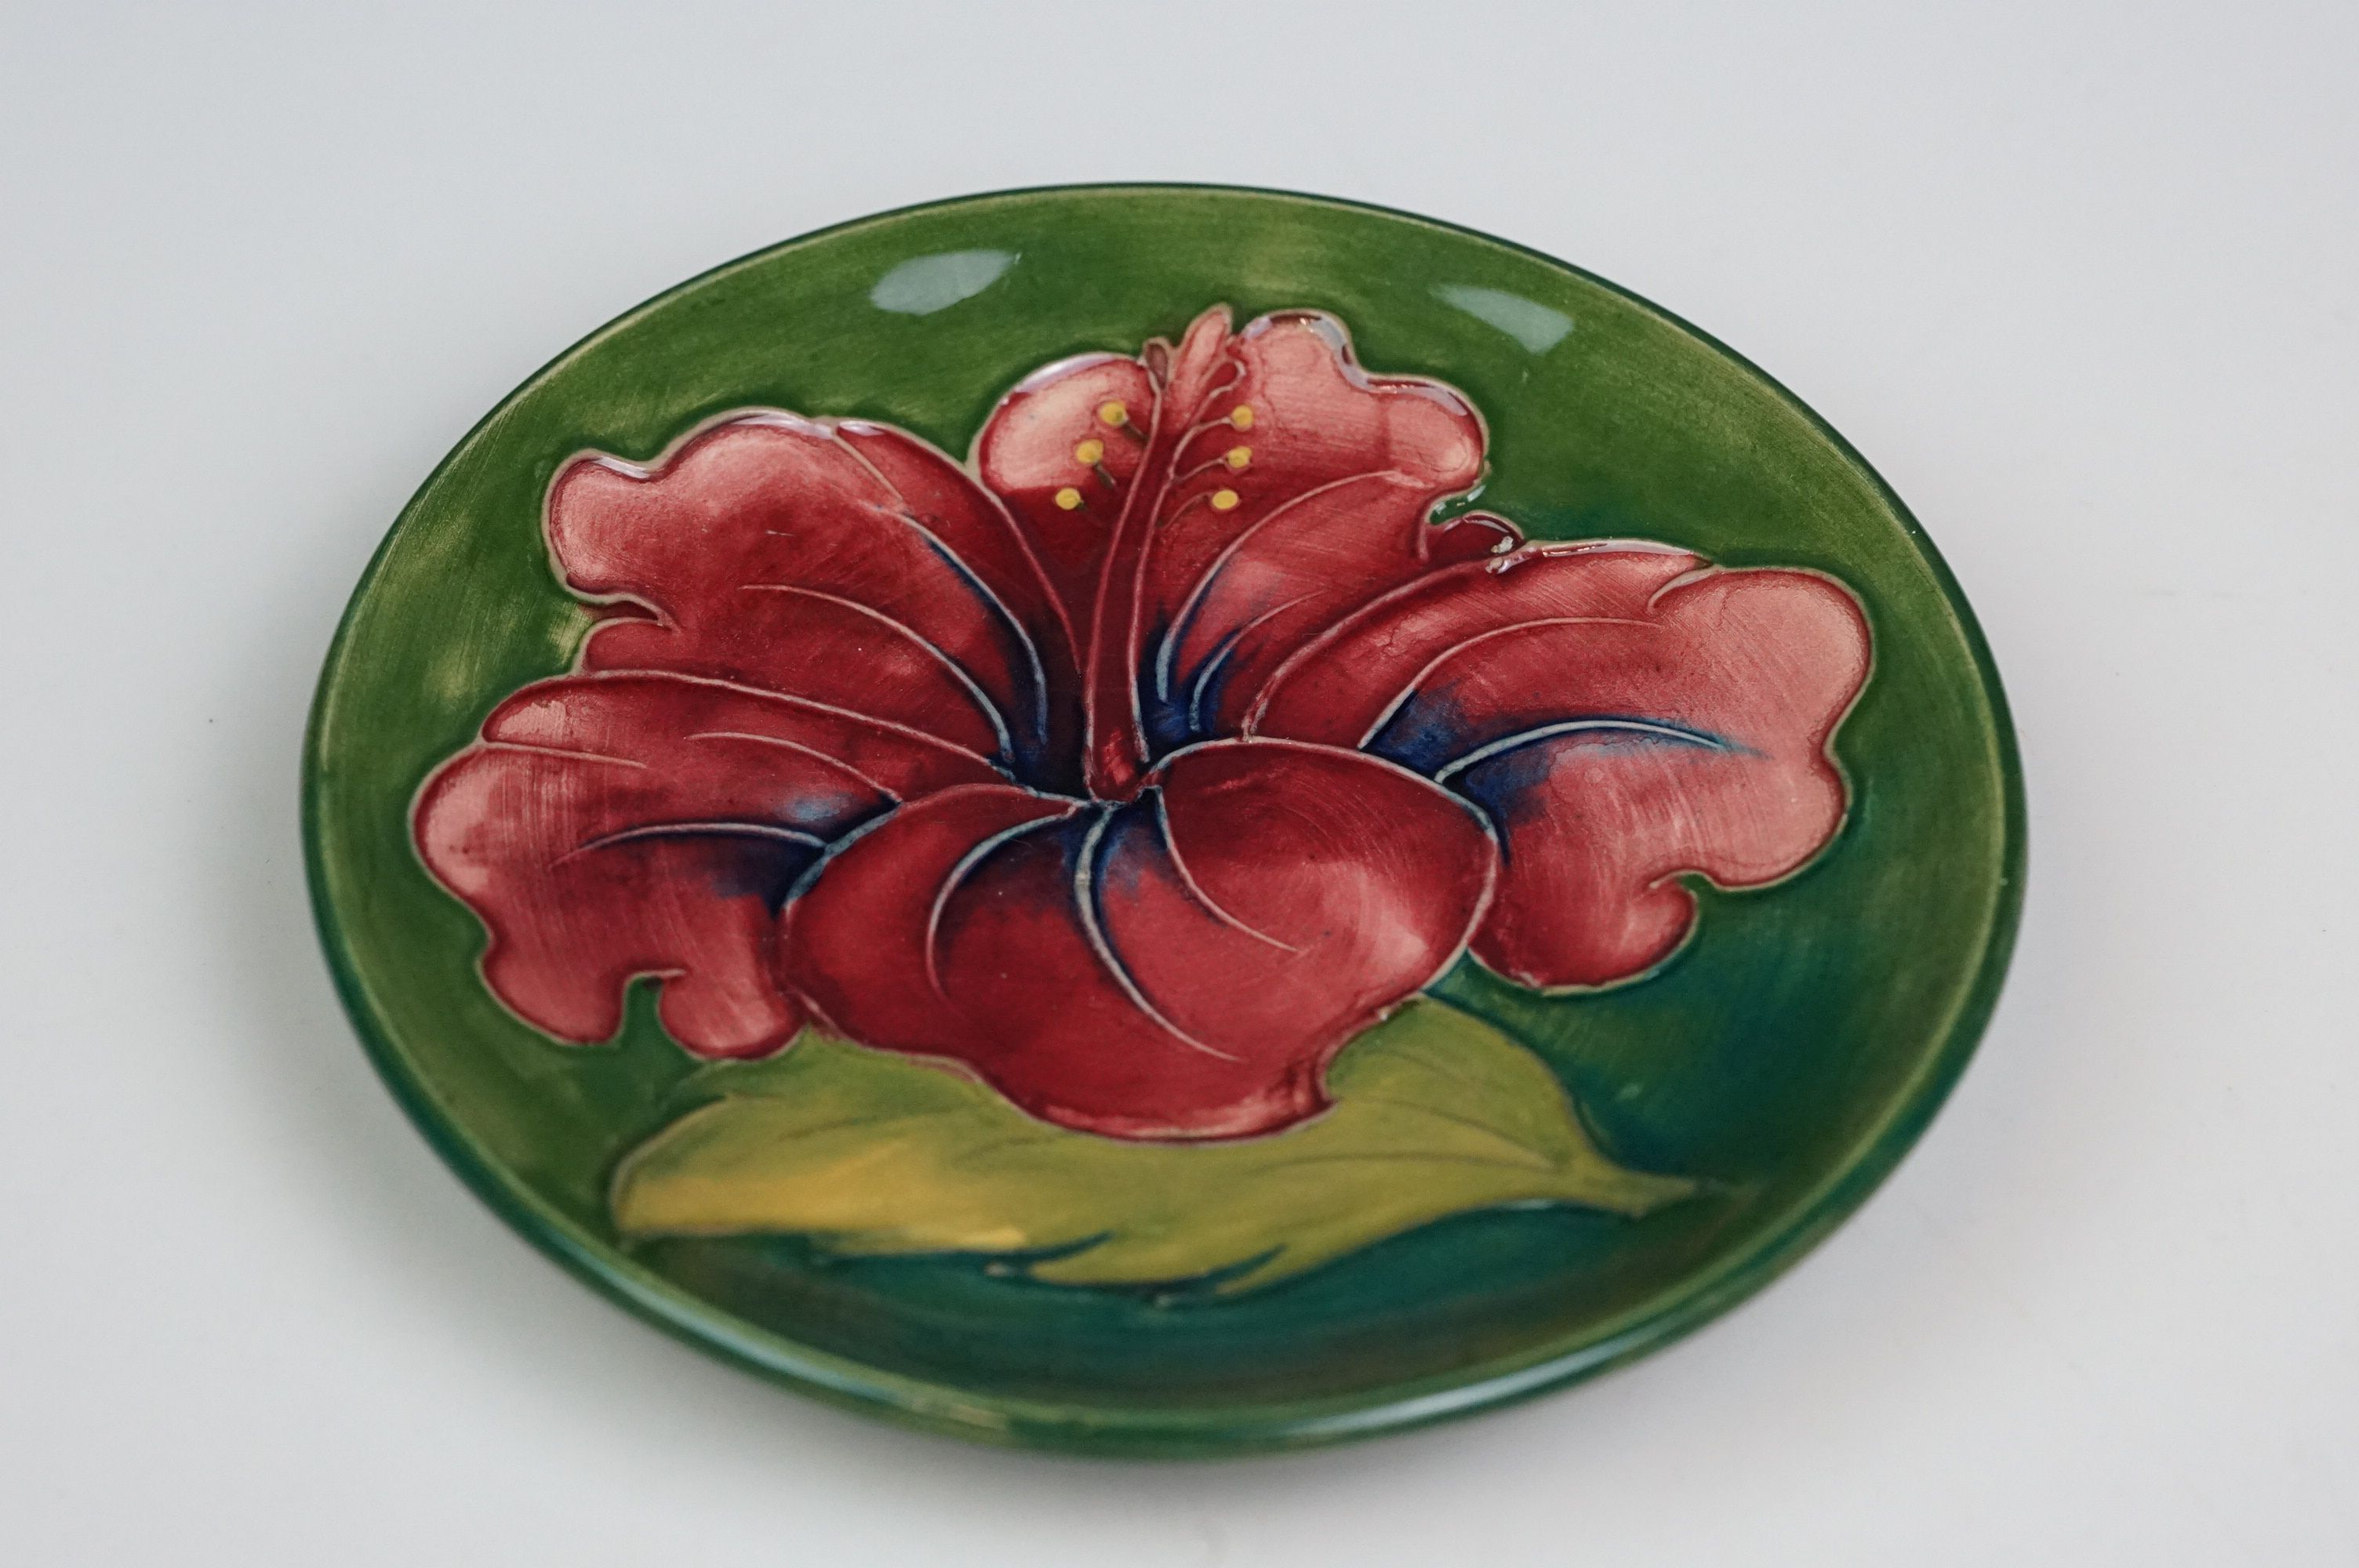 Moorcroft hibiscus flower pin dish, green ground with red flower, diameter approx 11.5cm